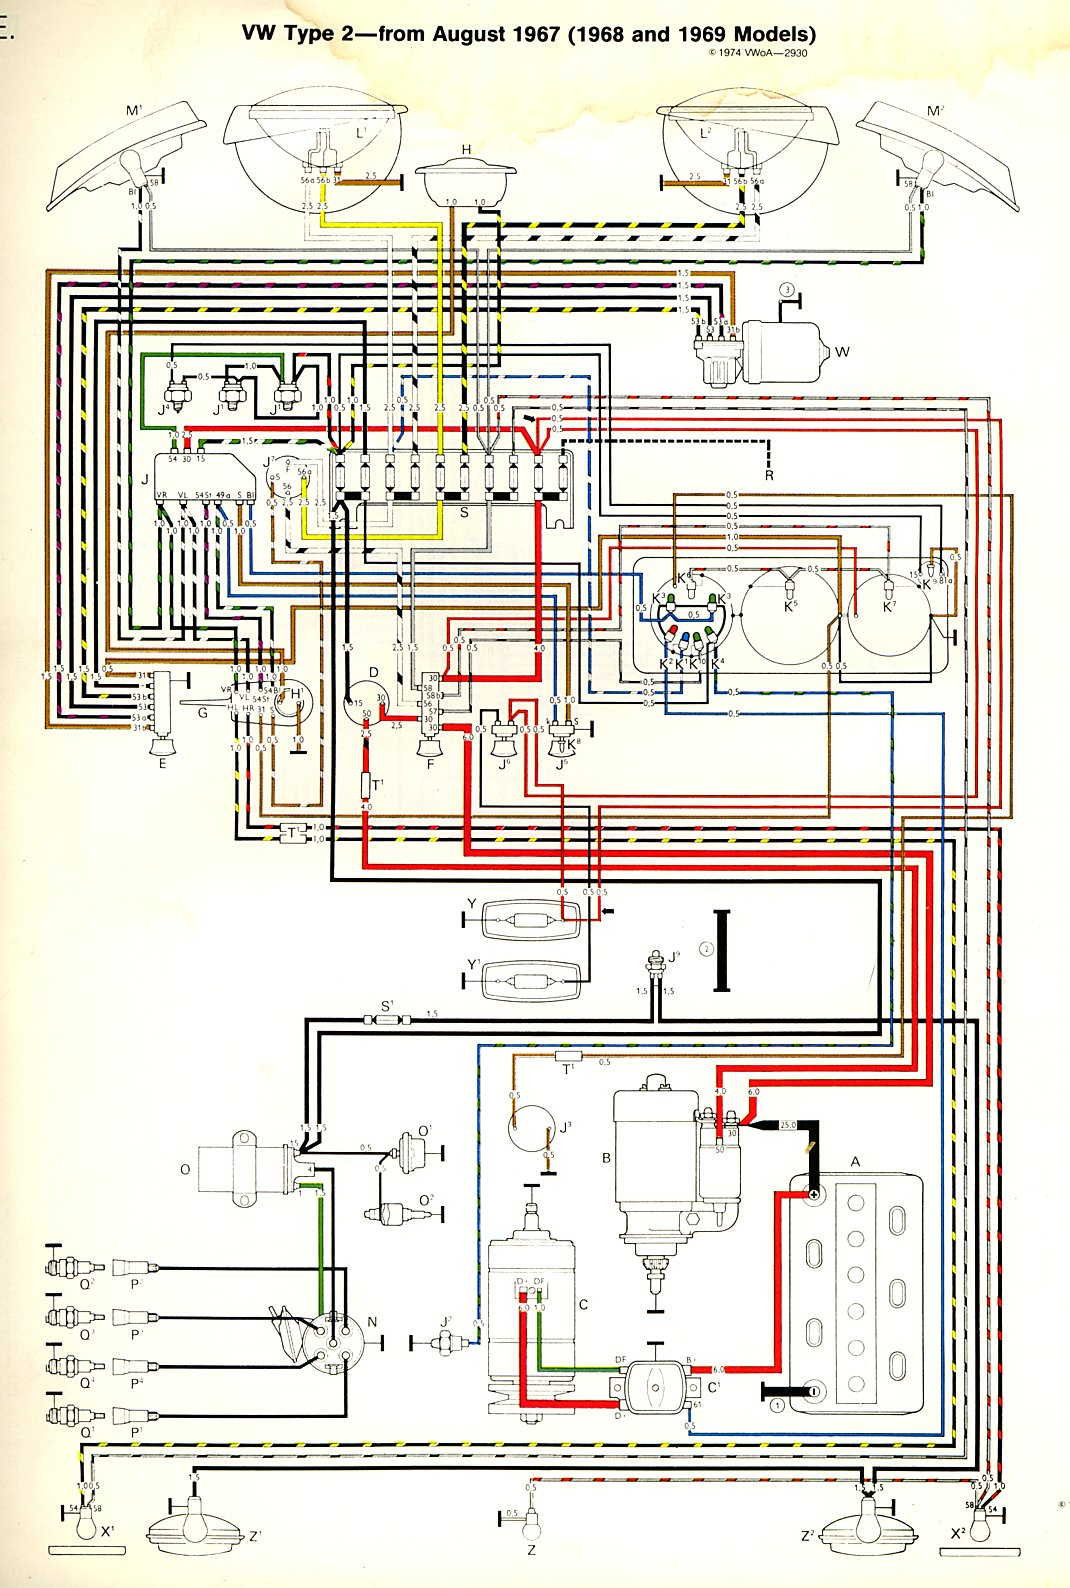 baybus_6869a 1968 69 bus wiring diagram thegoldenbug com 1970 vw wiring diagram at mifinder.co